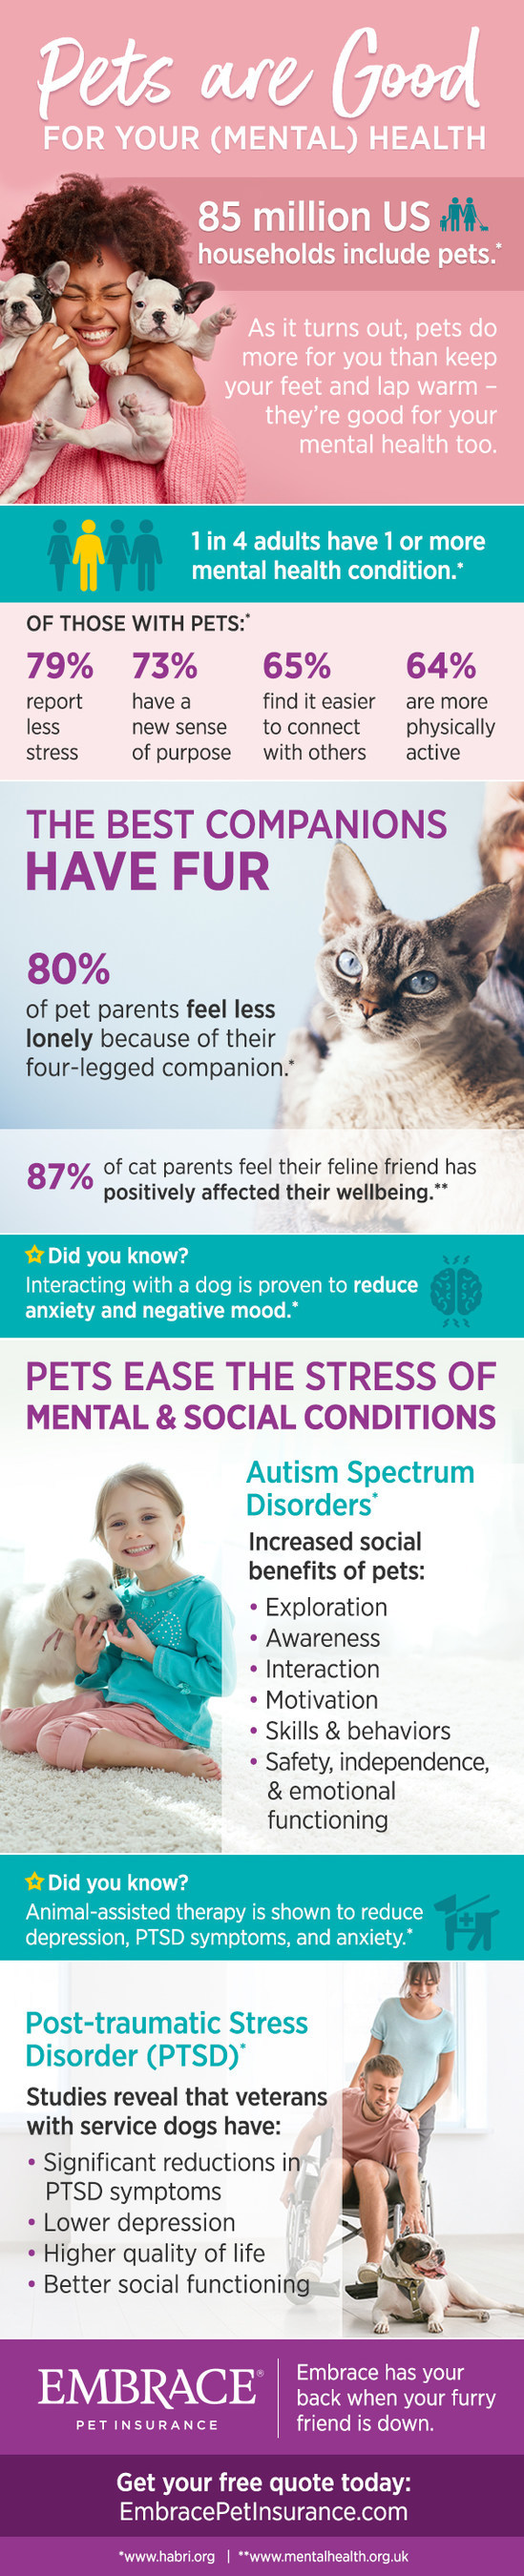 Embrace Pet Insurance Partners With The Good Dog Foundation During Mental Health Awareness Month